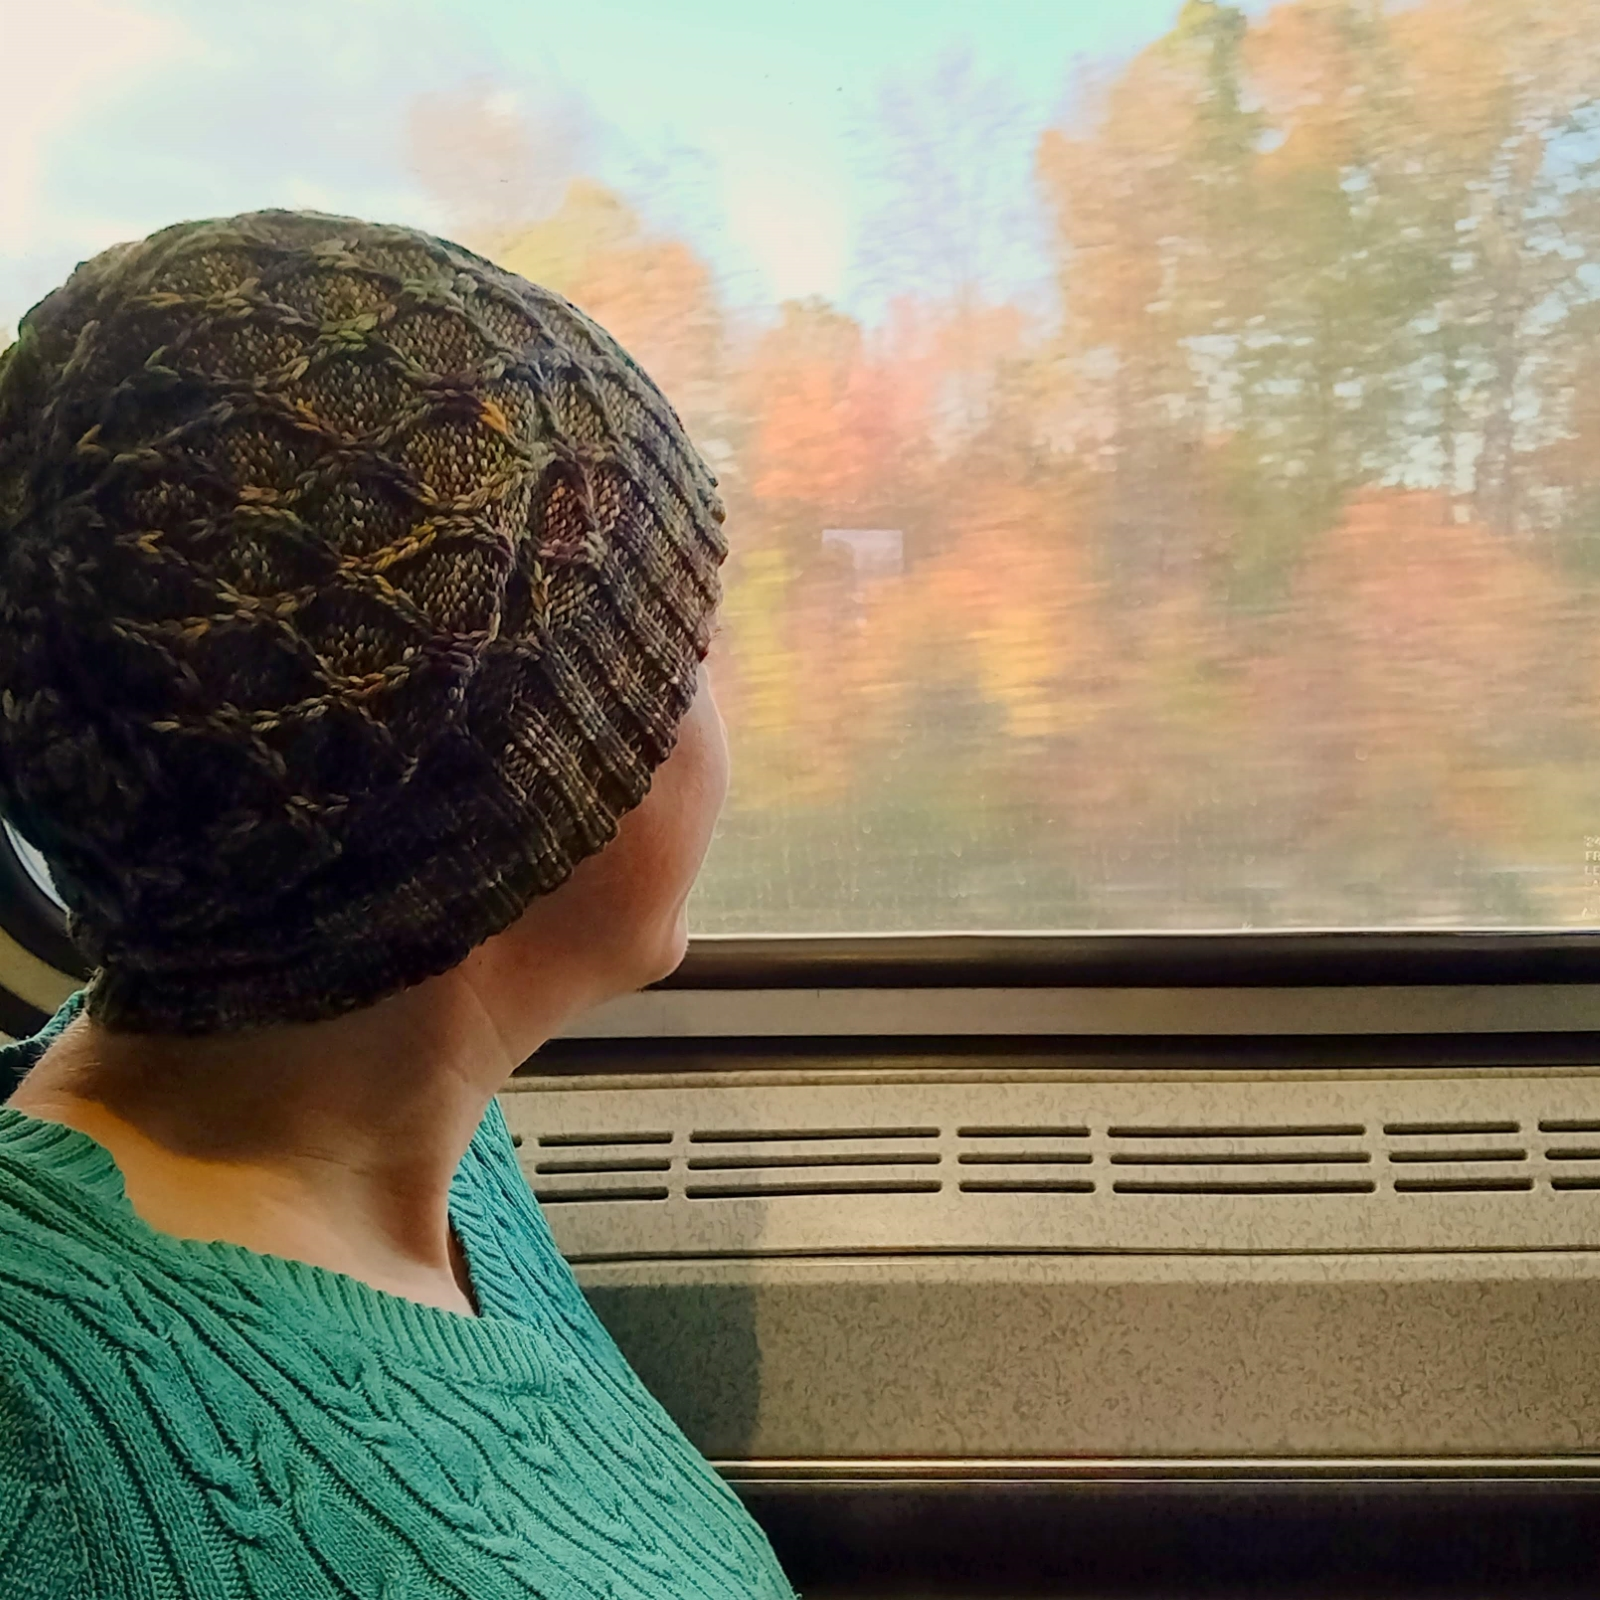 Pirate, wearing the new Passing Days hat, looking out the window of a moving train at autumn leaves.